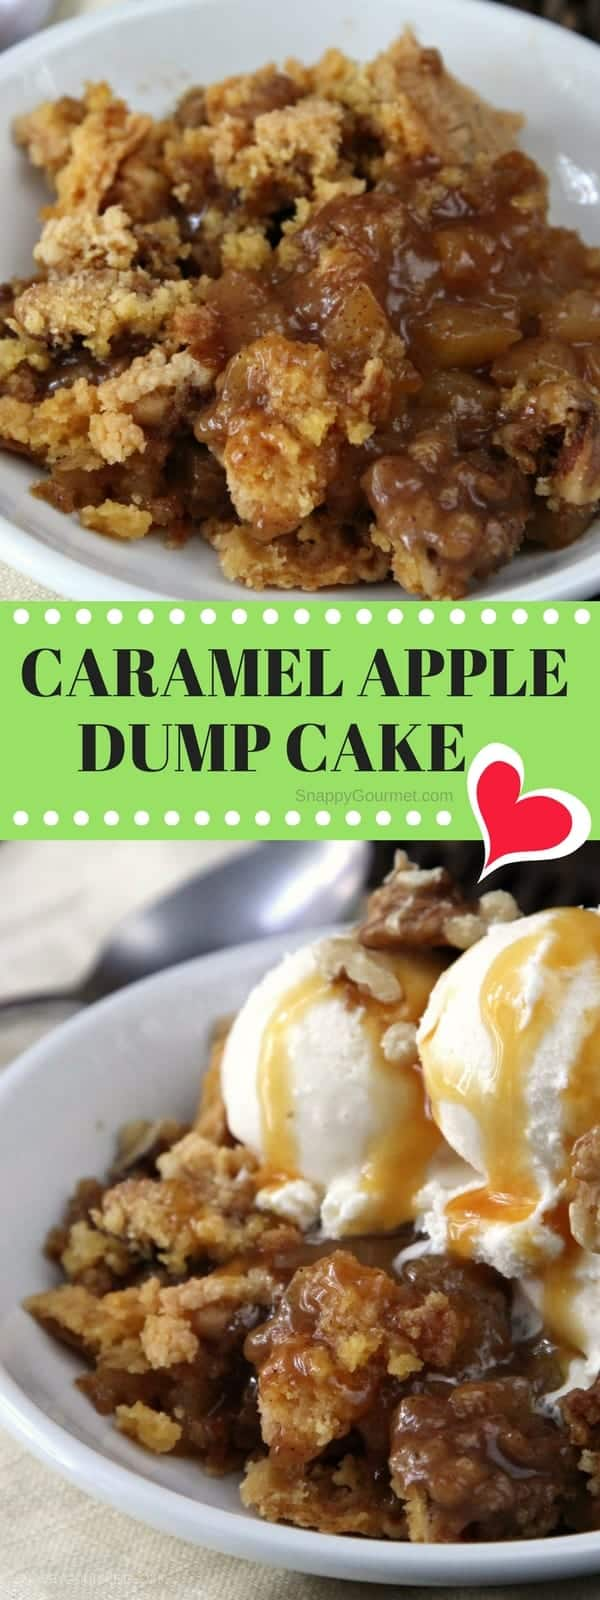 Caramel Apple Dump Cake Recipe - easy apple cake recipe with fresh apples. SnappyGourmet.com